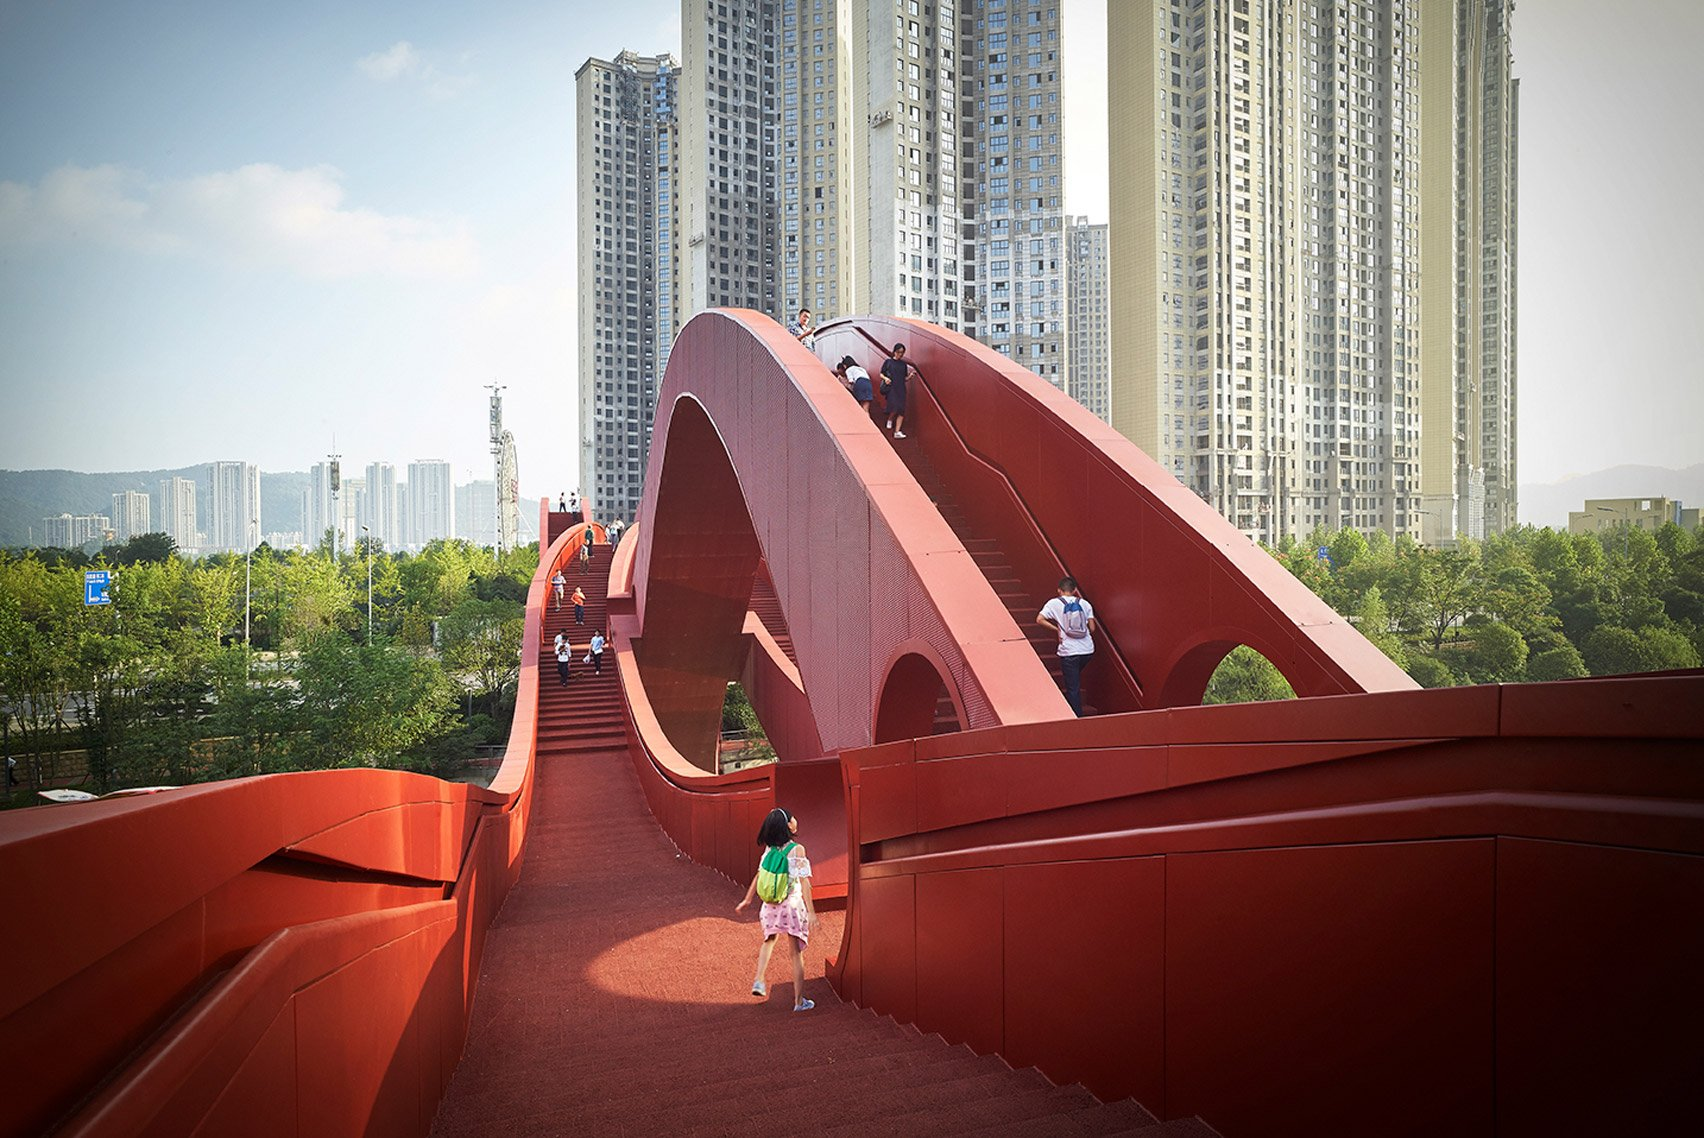 Wavy red ribbons form Lucky Knot bridge by NEXT Architects